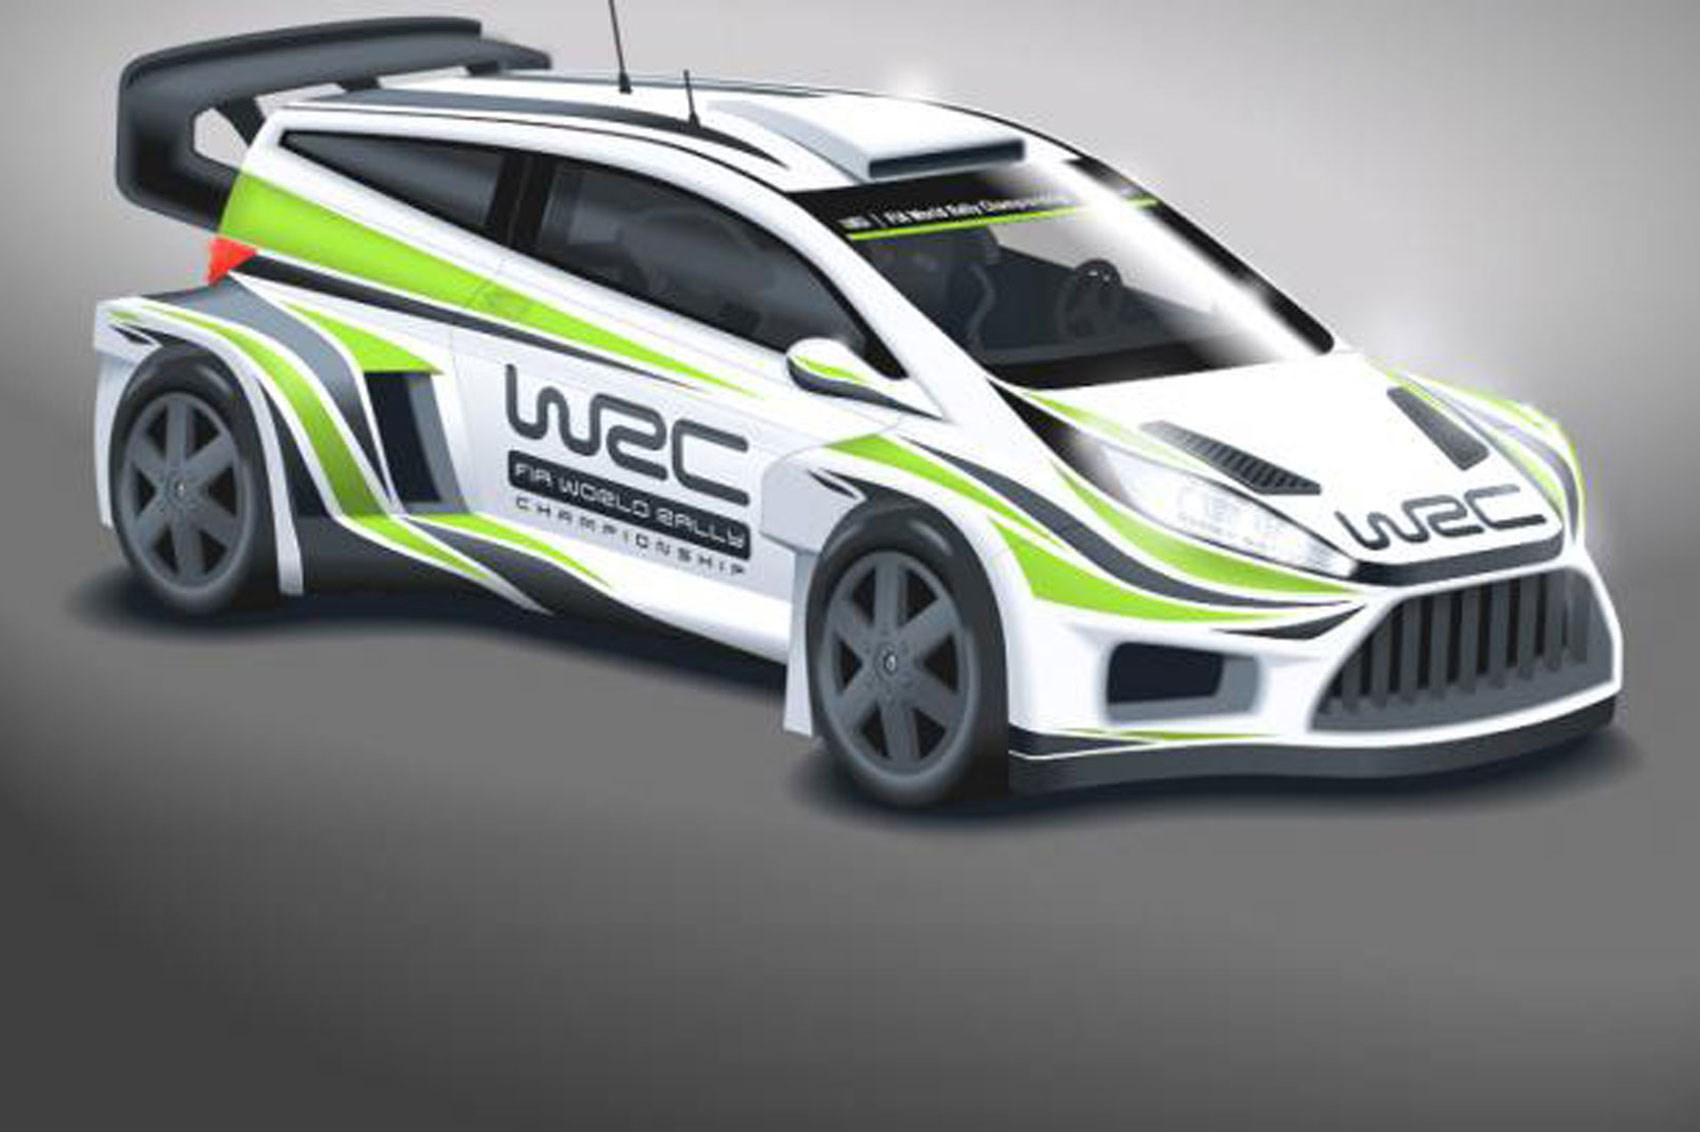 Ultrablogus  Mesmerizing Wild New Look For Wrc Cars In  By Car Magazine With Licious Wrc Cars Will Get Wider Bodies Bigger Wings And More Power For  With Easy On The Eye  Fit Interior Also King Ranch Interior In Addition Ford Flex Interior Photos And  Civic Lx Interior As Well As Mitsubishi Lancer  Interior Additionally Interior Car Door Handle Repair From Carmagazinecouk With Ultrablogus  Licious Wild New Look For Wrc Cars In  By Car Magazine With Easy On The Eye Wrc Cars Will Get Wider Bodies Bigger Wings And More Power For  And Mesmerizing  Fit Interior Also King Ranch Interior In Addition Ford Flex Interior Photos From Carmagazinecouk